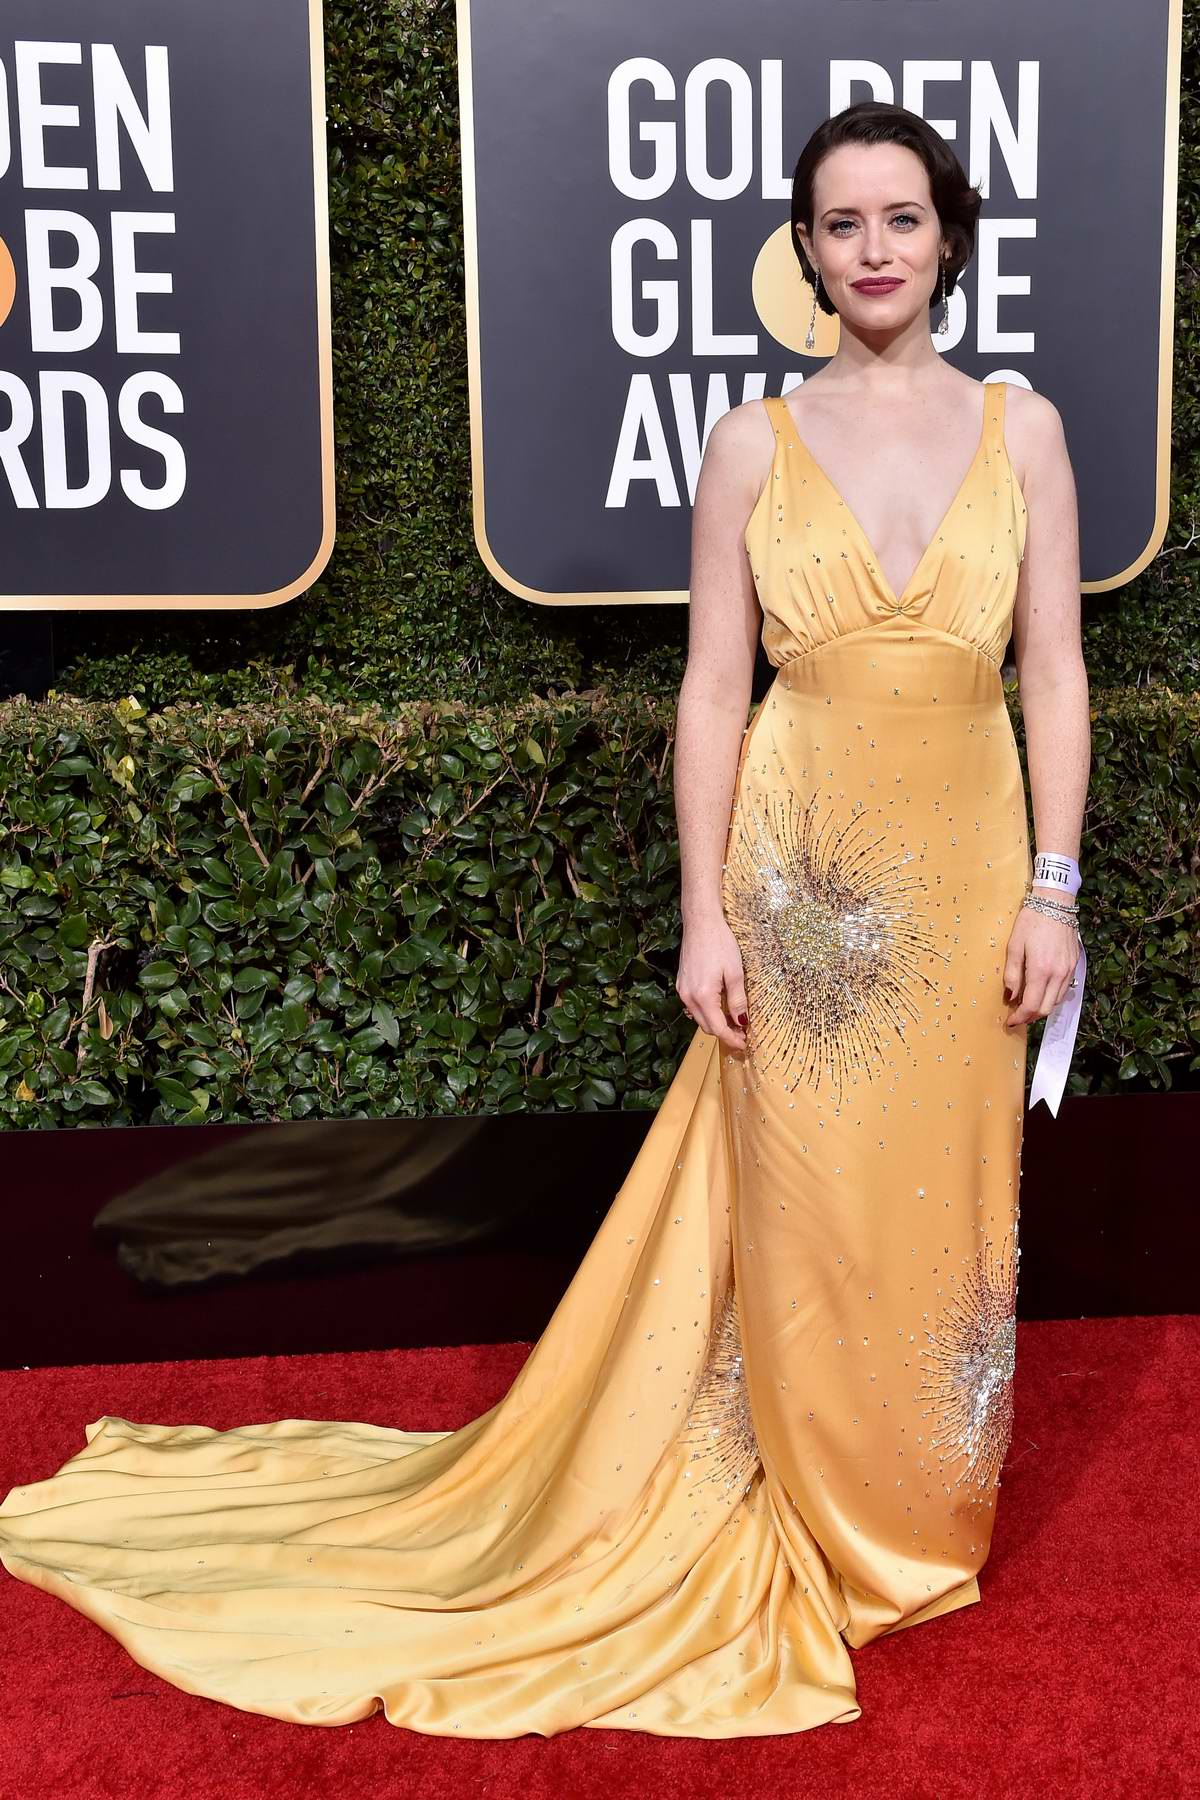 Claire Foy attends the 76th Annual Golden Globe Awards held at The Beverly Hilton Hotel in Los Angeles, California